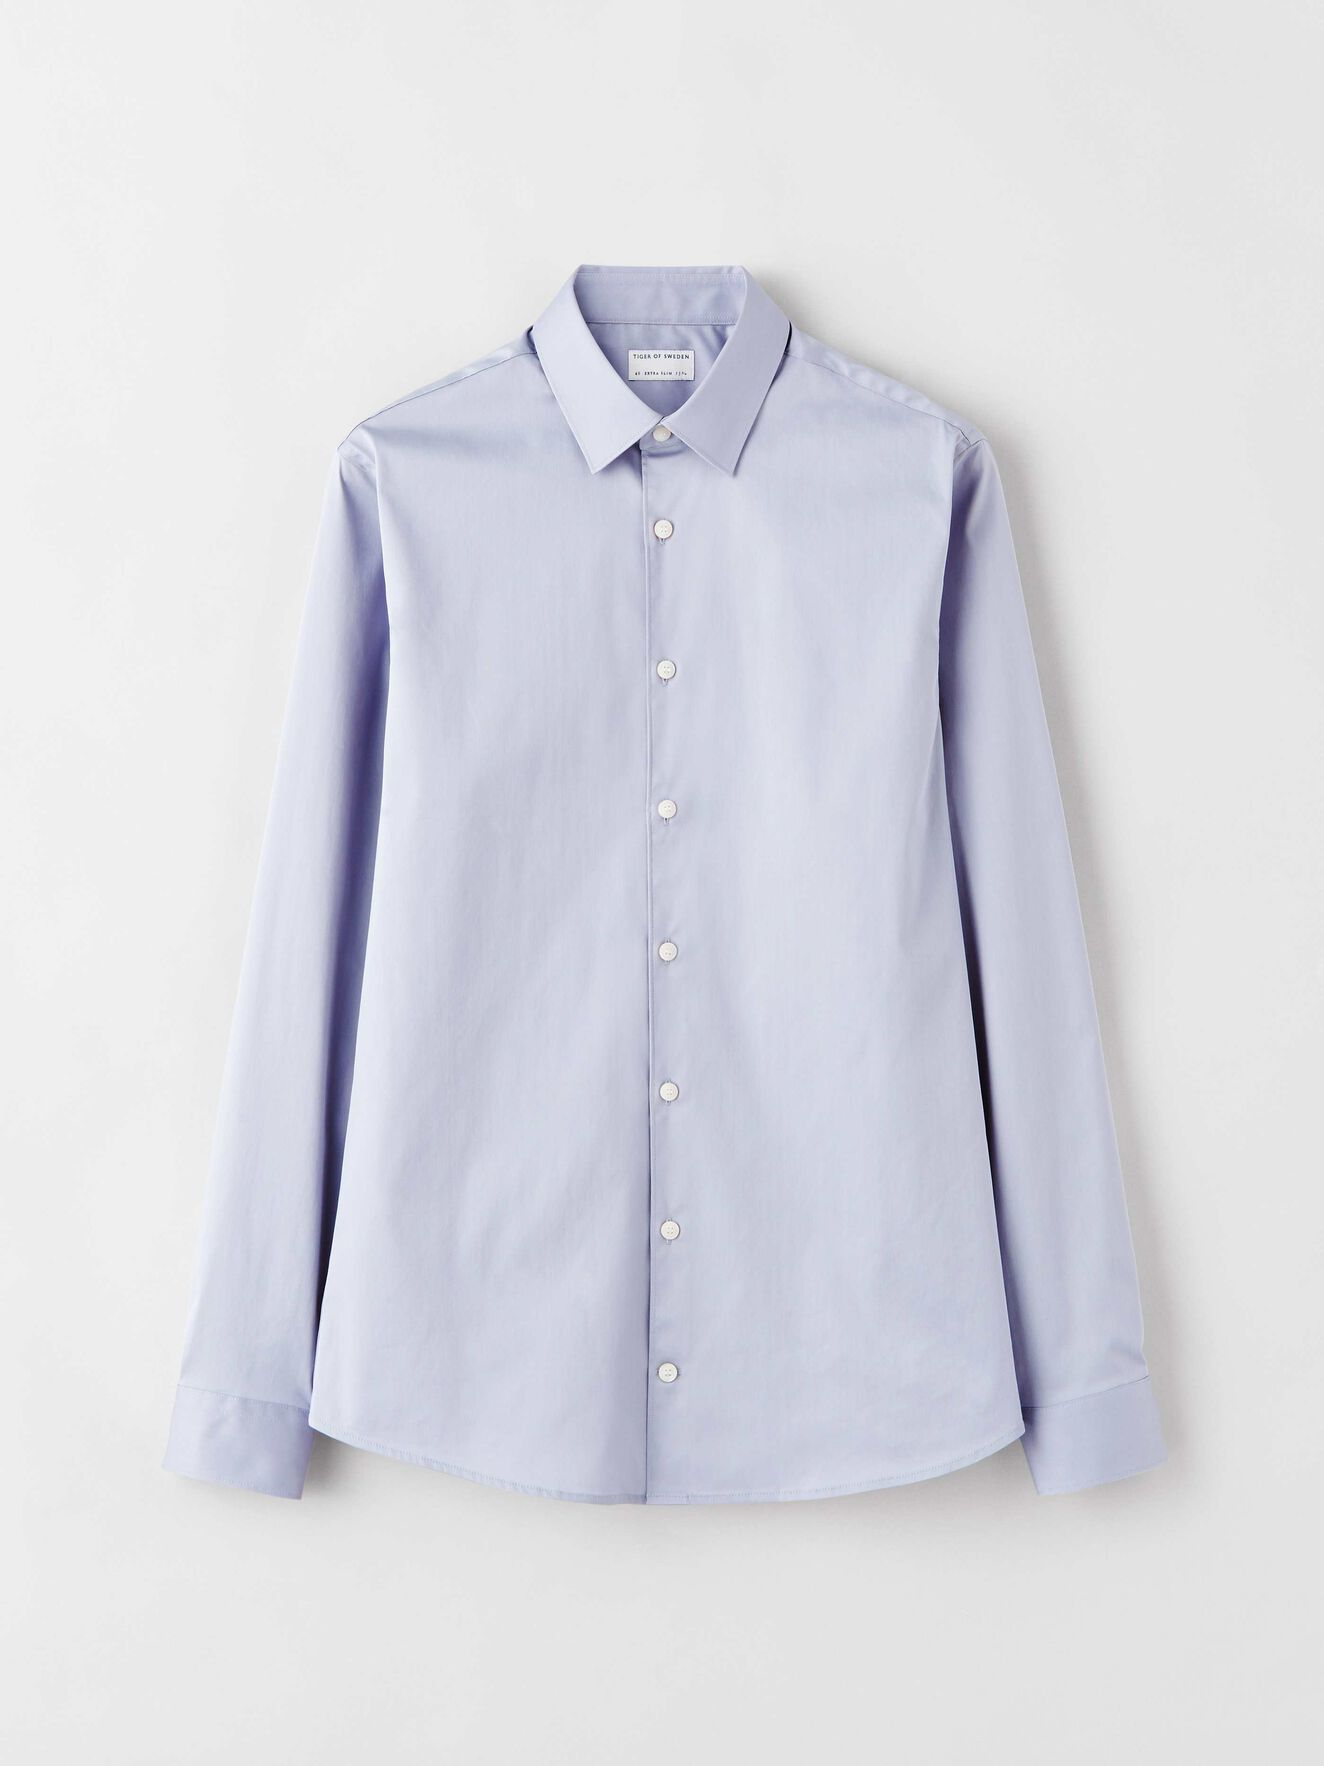 412bad08a187 Shirts - Browse short- and long-sleeved shirts online at Tiger of Sweden